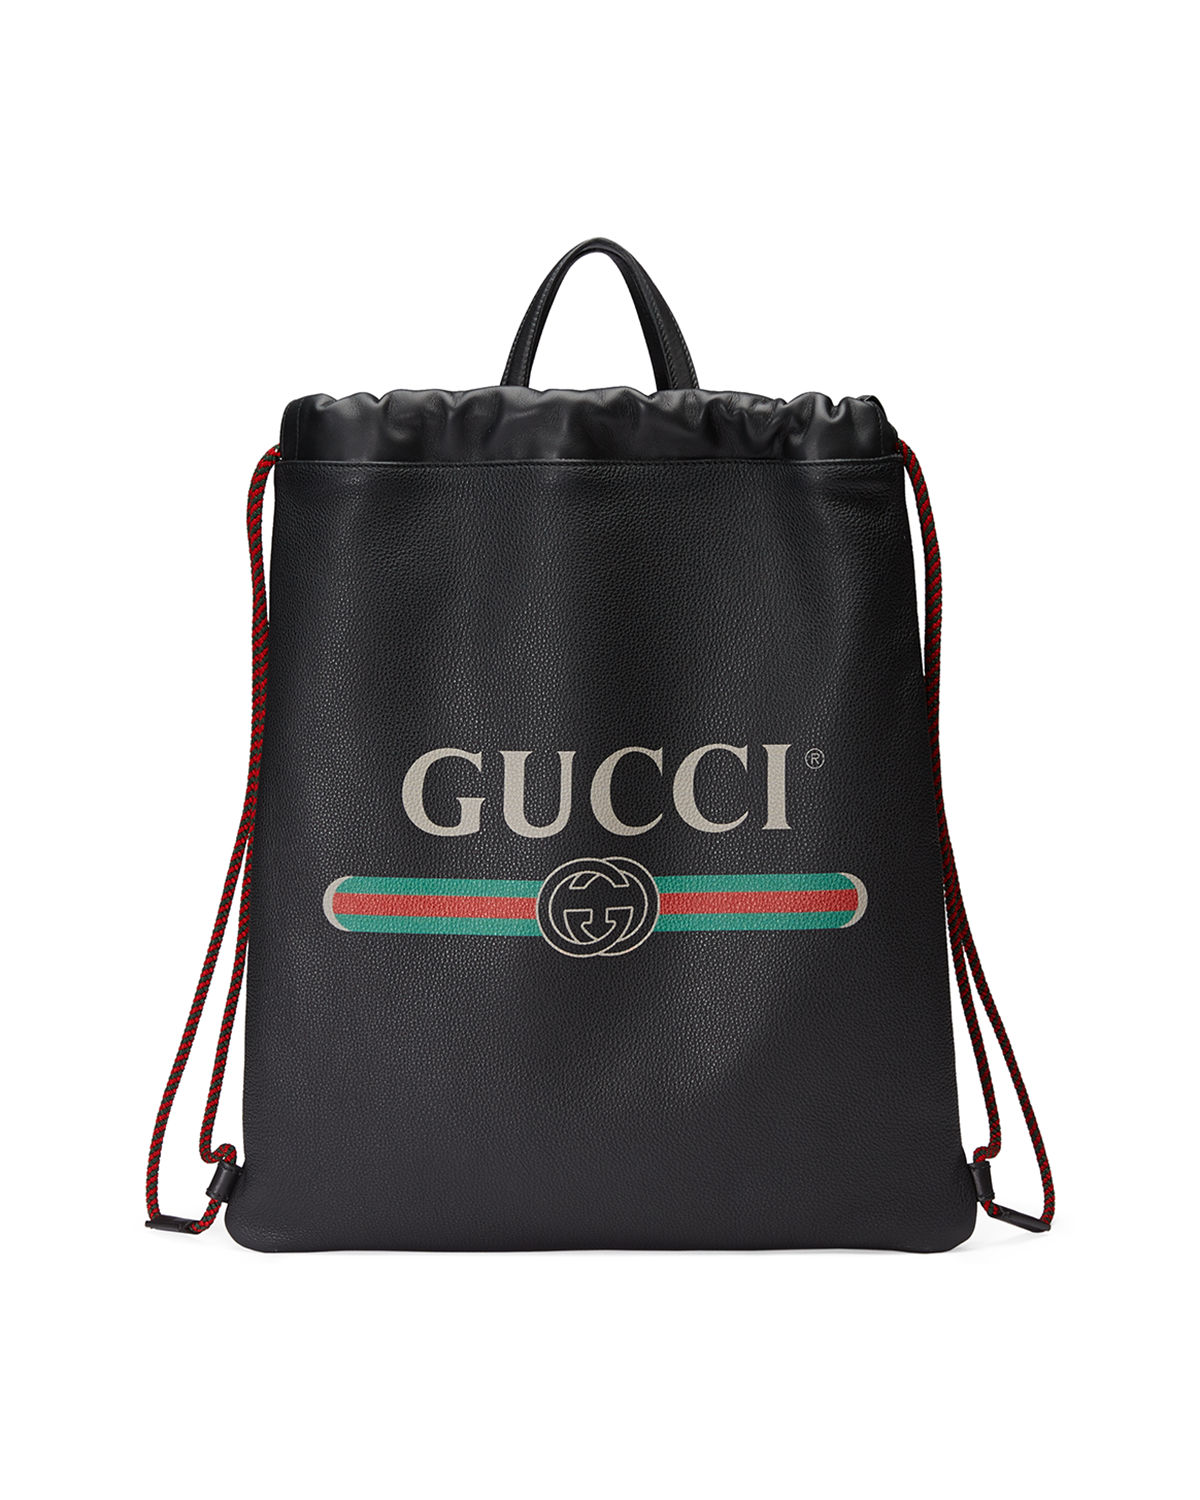 Gucci Gucci-Print Leather Drawstring Backpack  c991fc72be9a4